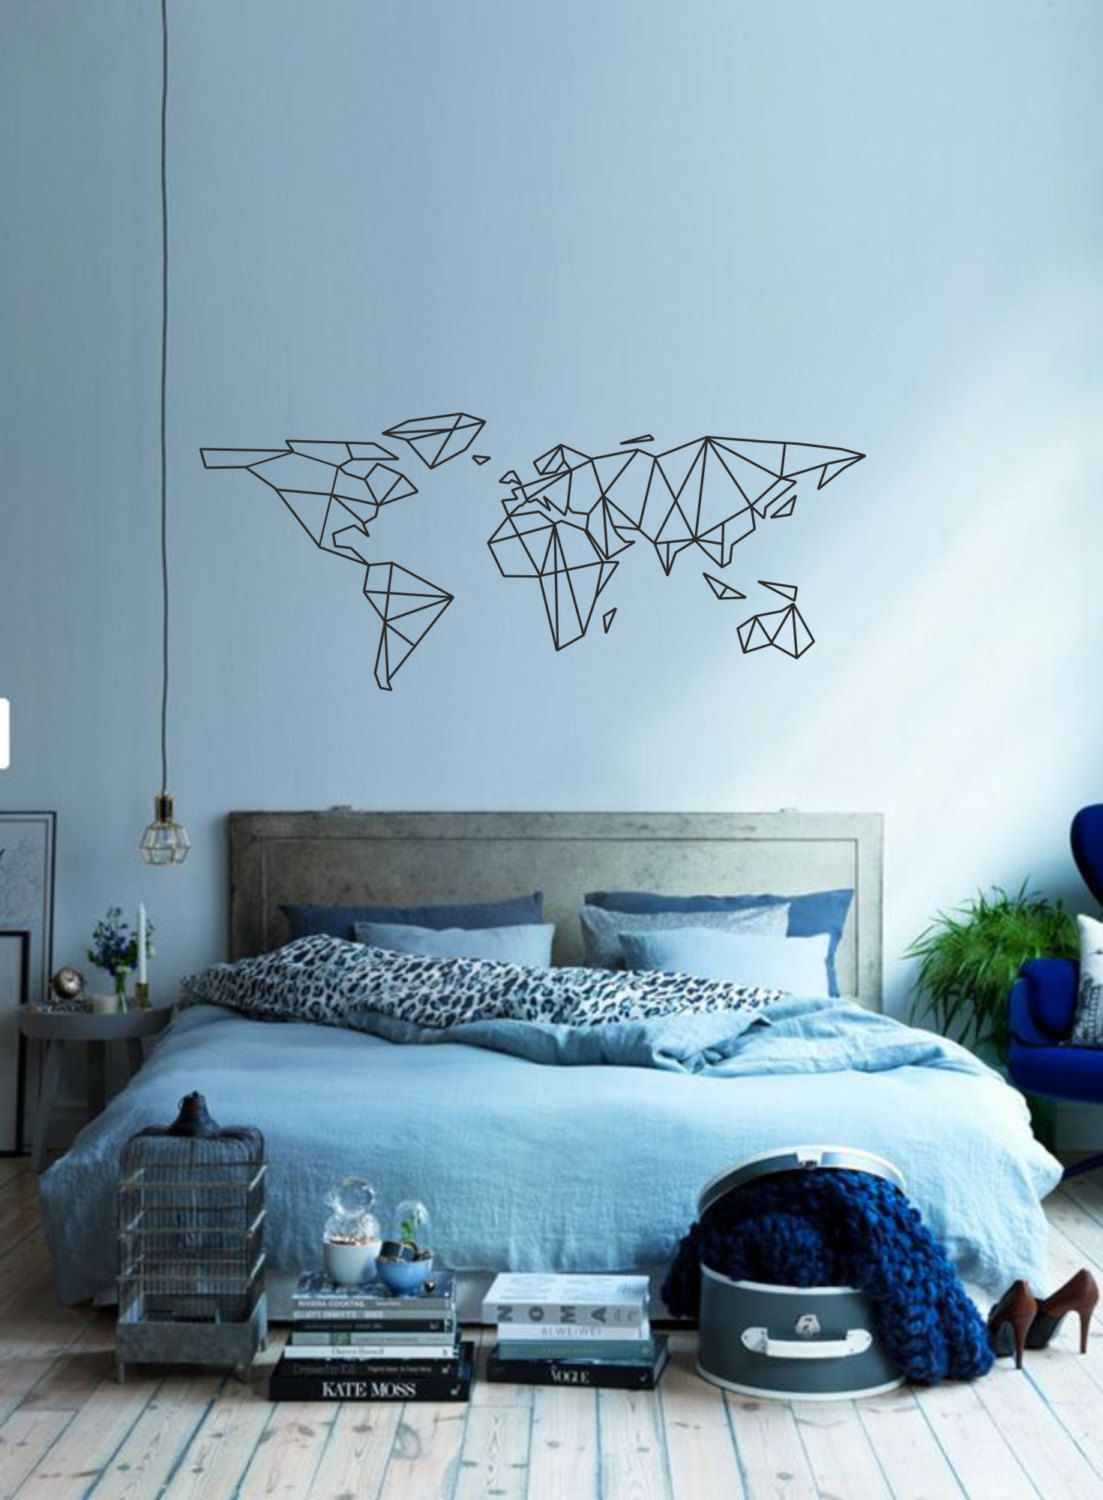 Wall decal new york letter frame cheap stickers world discount - Science Art Geometric World Map Vinyl Wall Decal Sticker Removable Vinyl Wall Decor For Office Classroom Playroom Minimal Decor